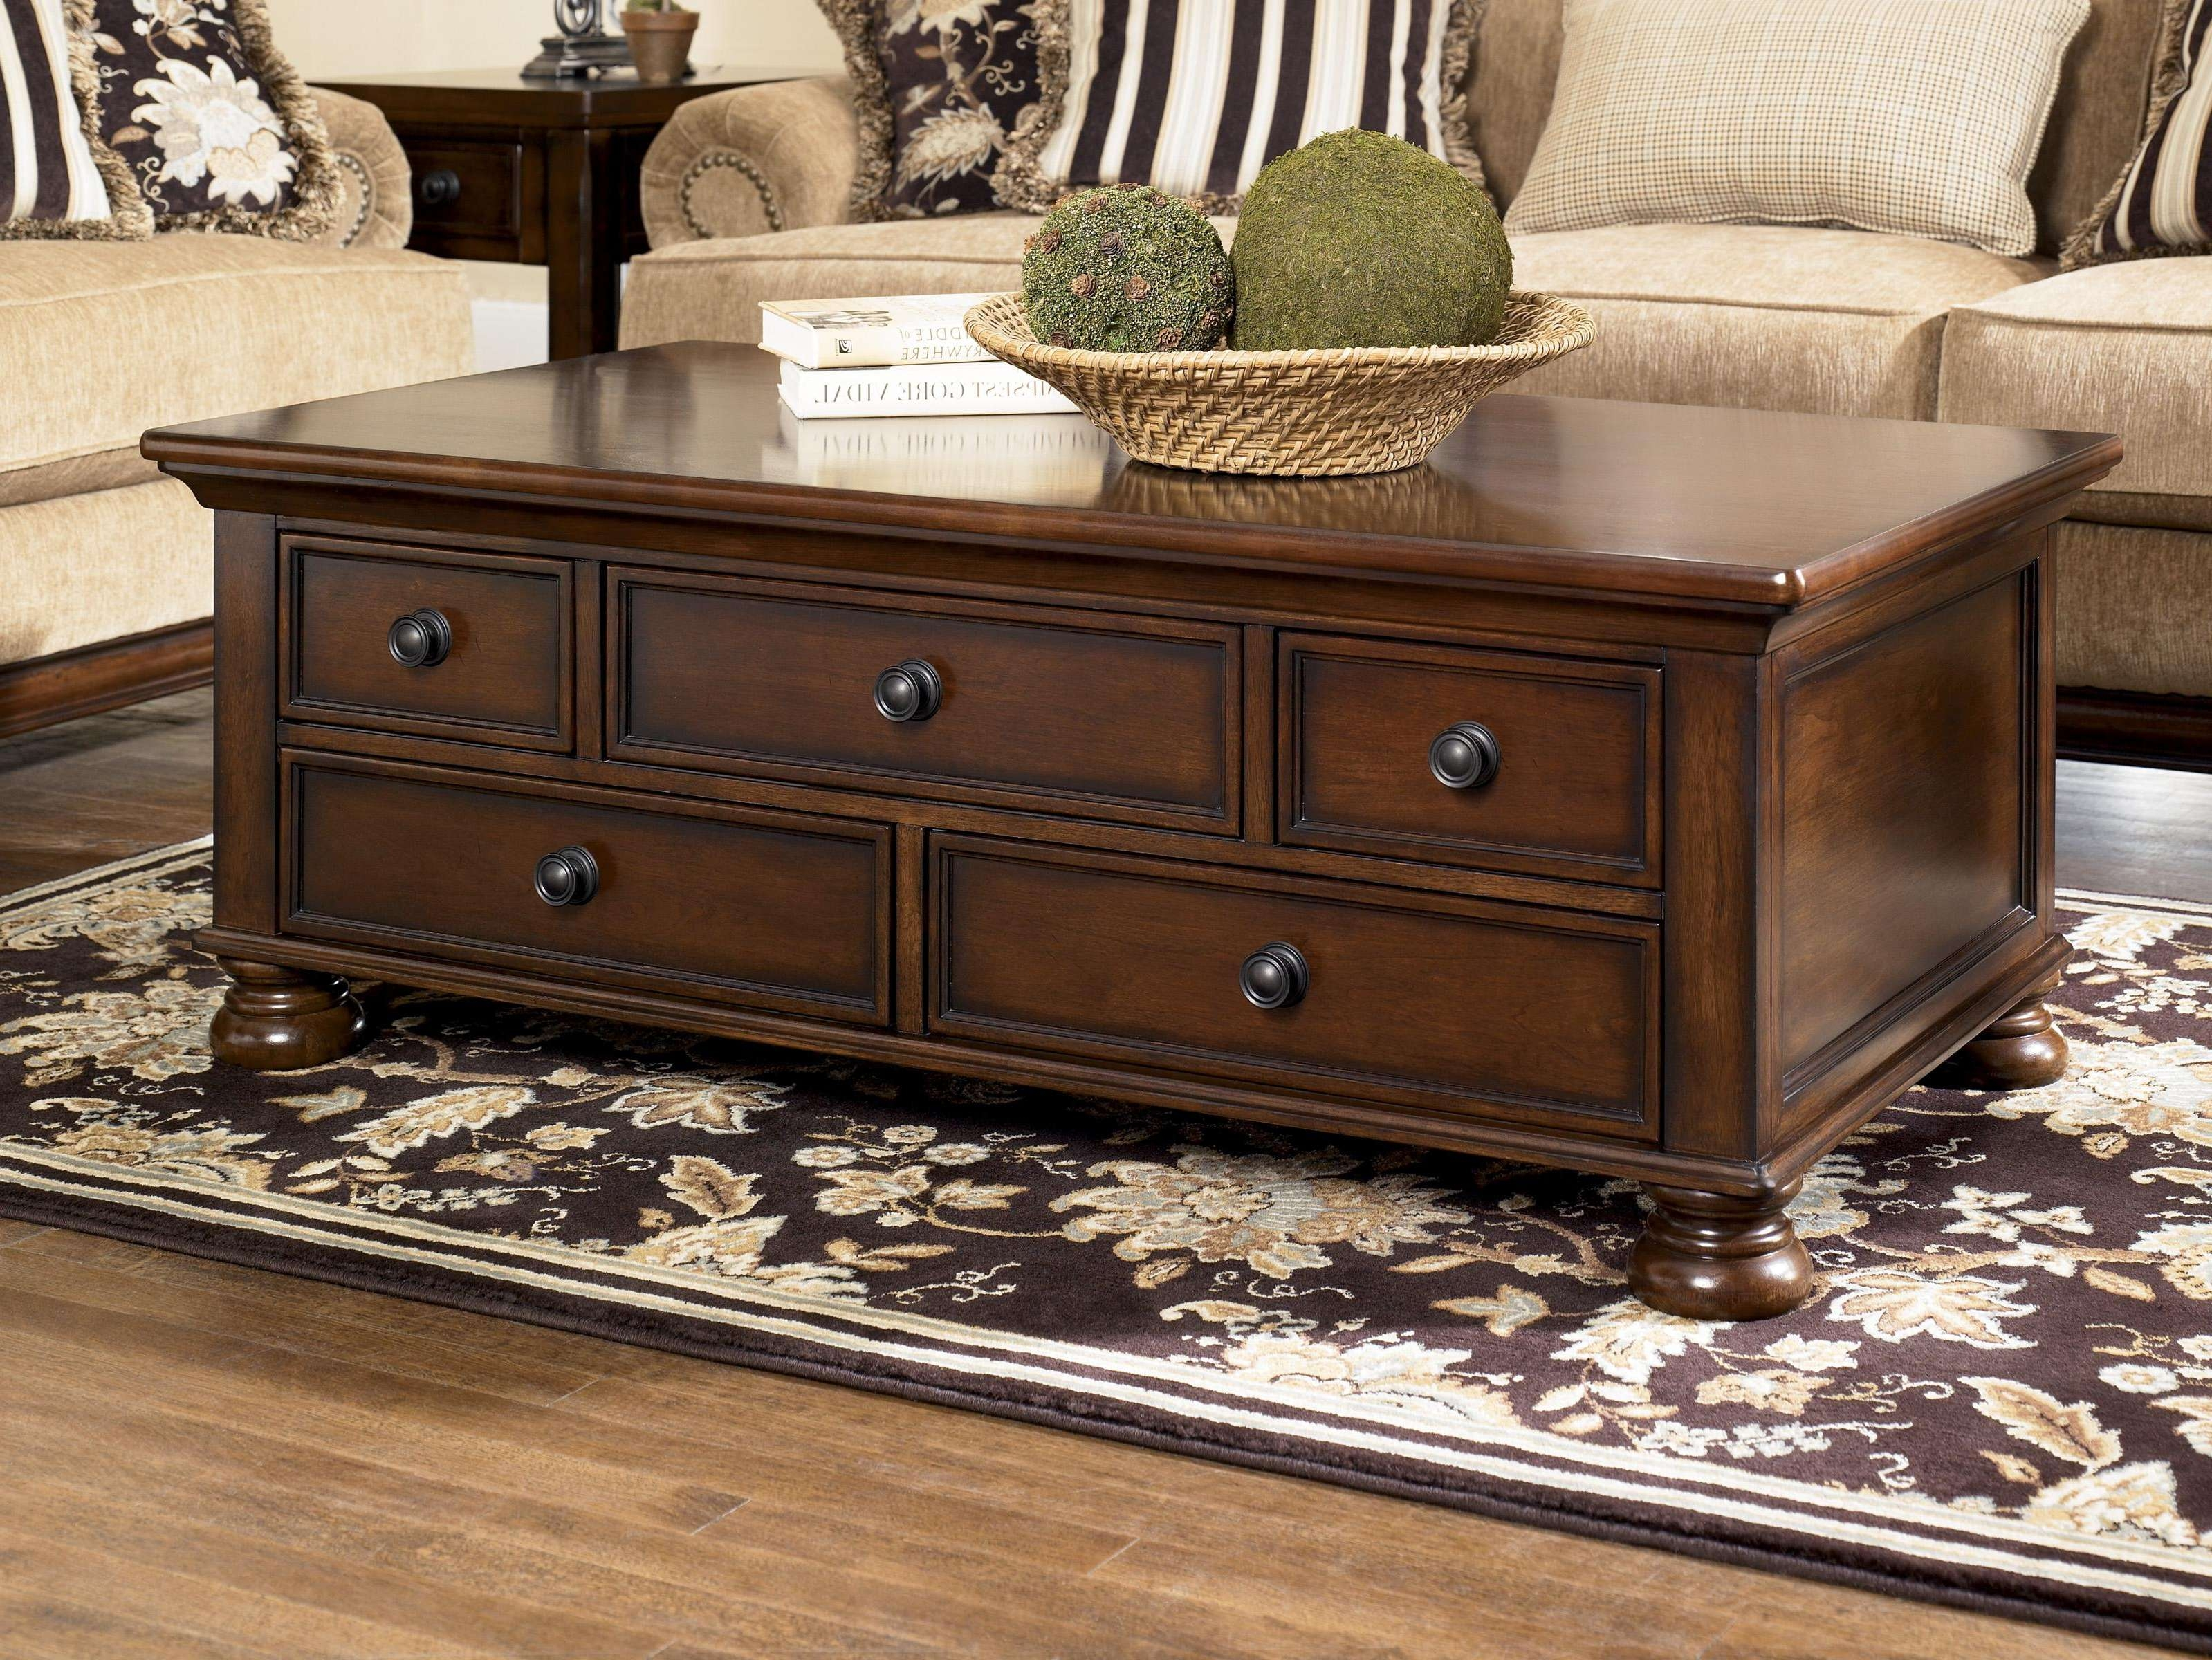 Popular Hardwood Coffee Tables With Storage Within Coffee Table: Surprising Coffee Table Storage Small Glass Coffee (View 10 of 20)